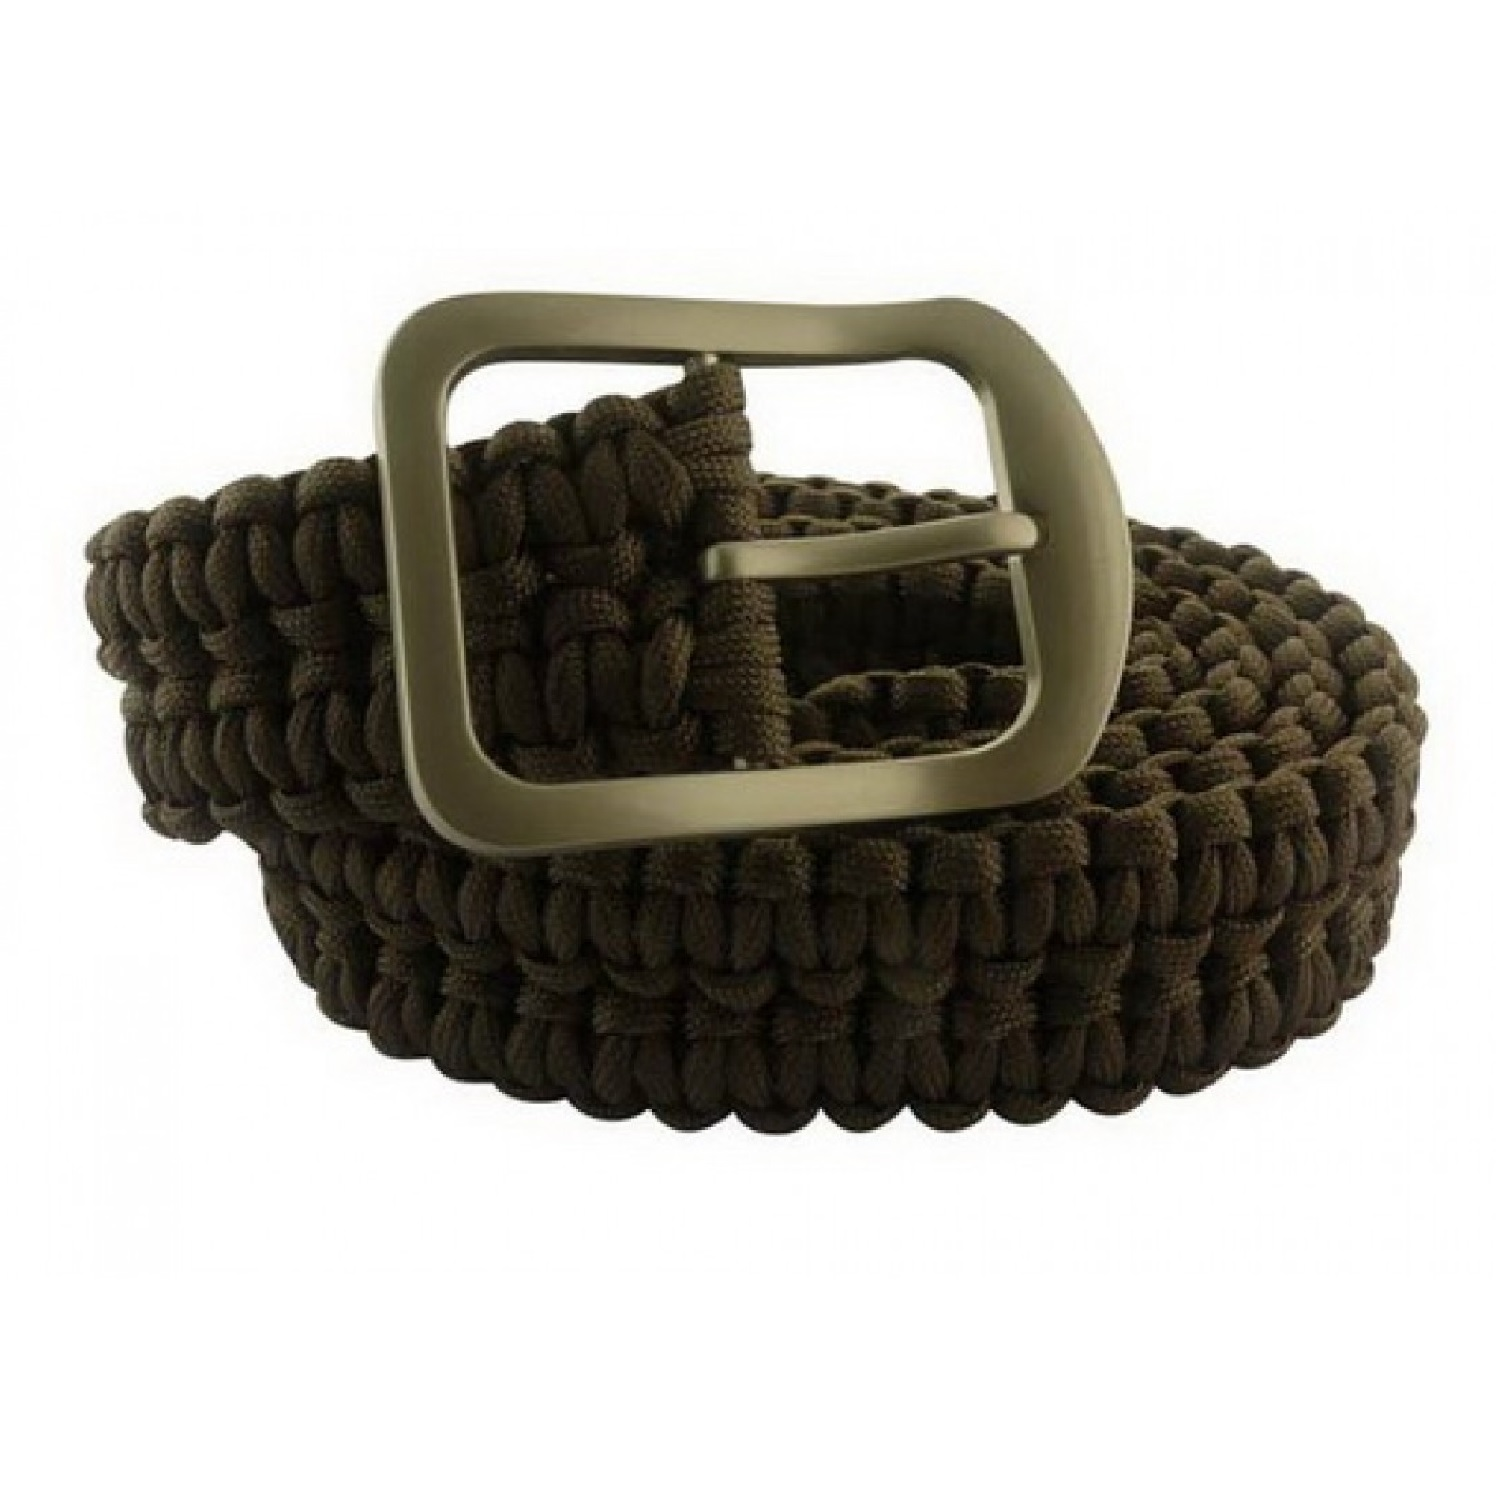 Impulse Product Paracord Belt with Steel Buckle Desert Brown